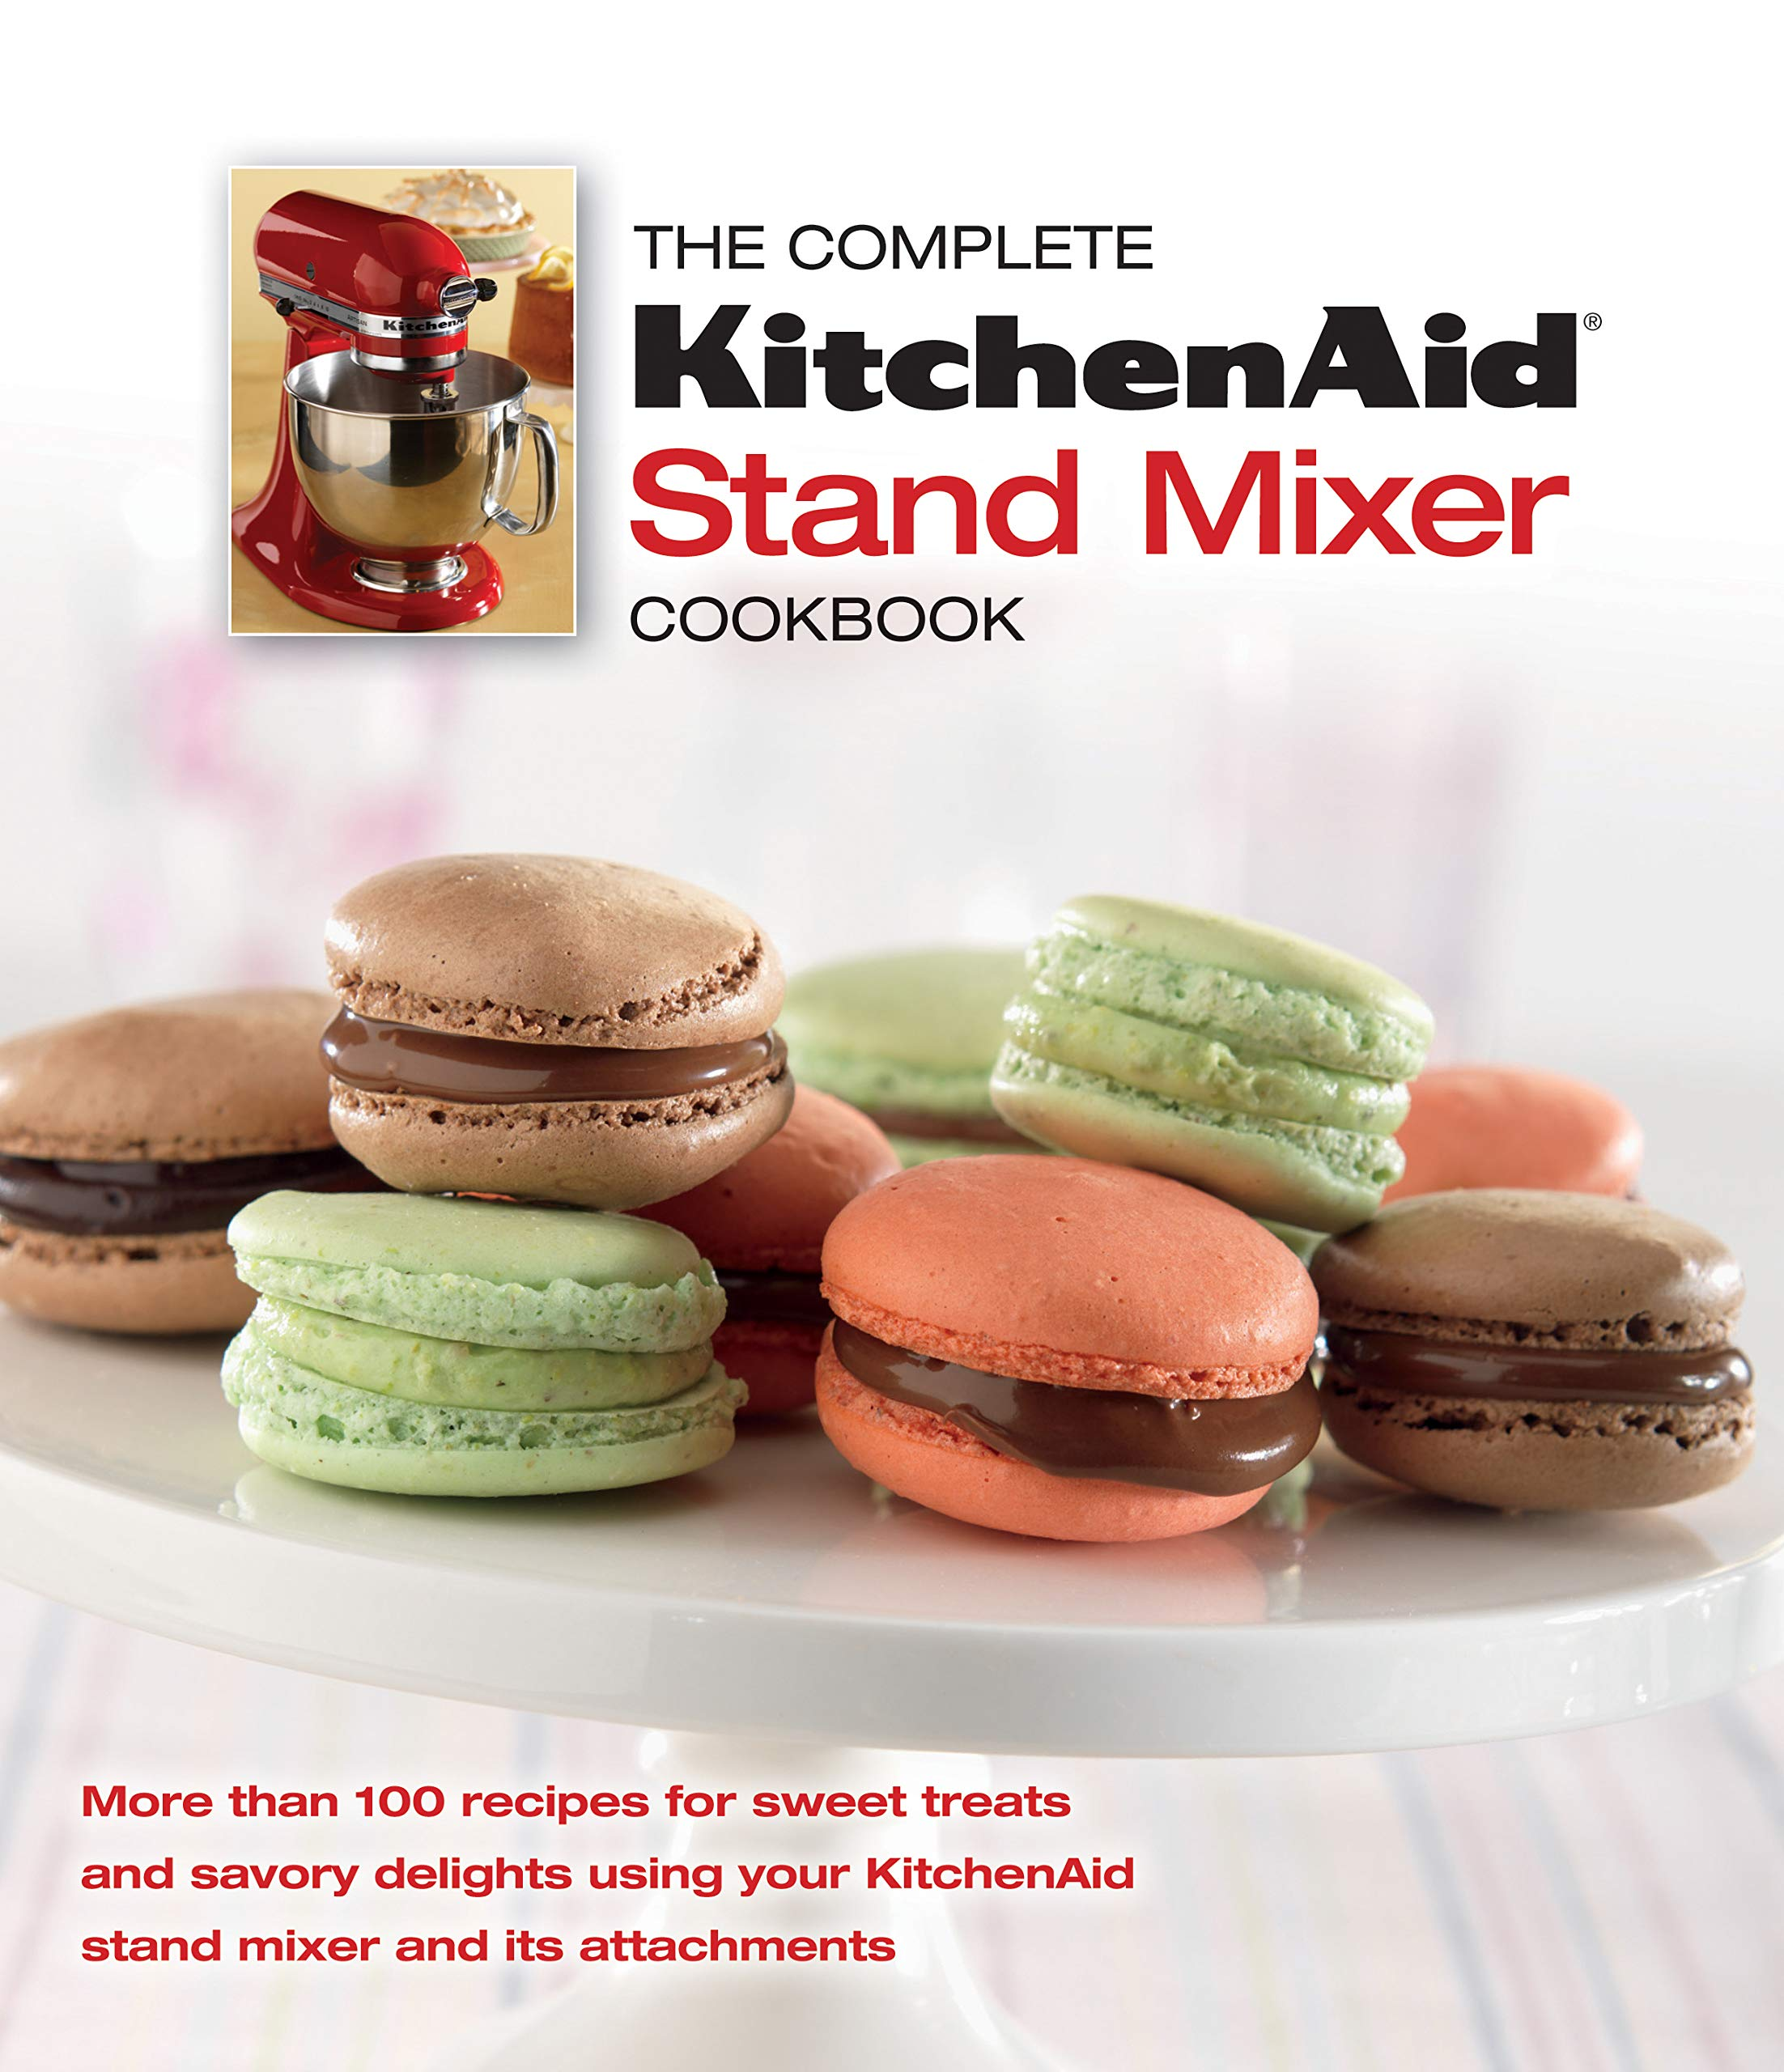 The Complete Kitchenaid Stand Mixer Cookbook Publications